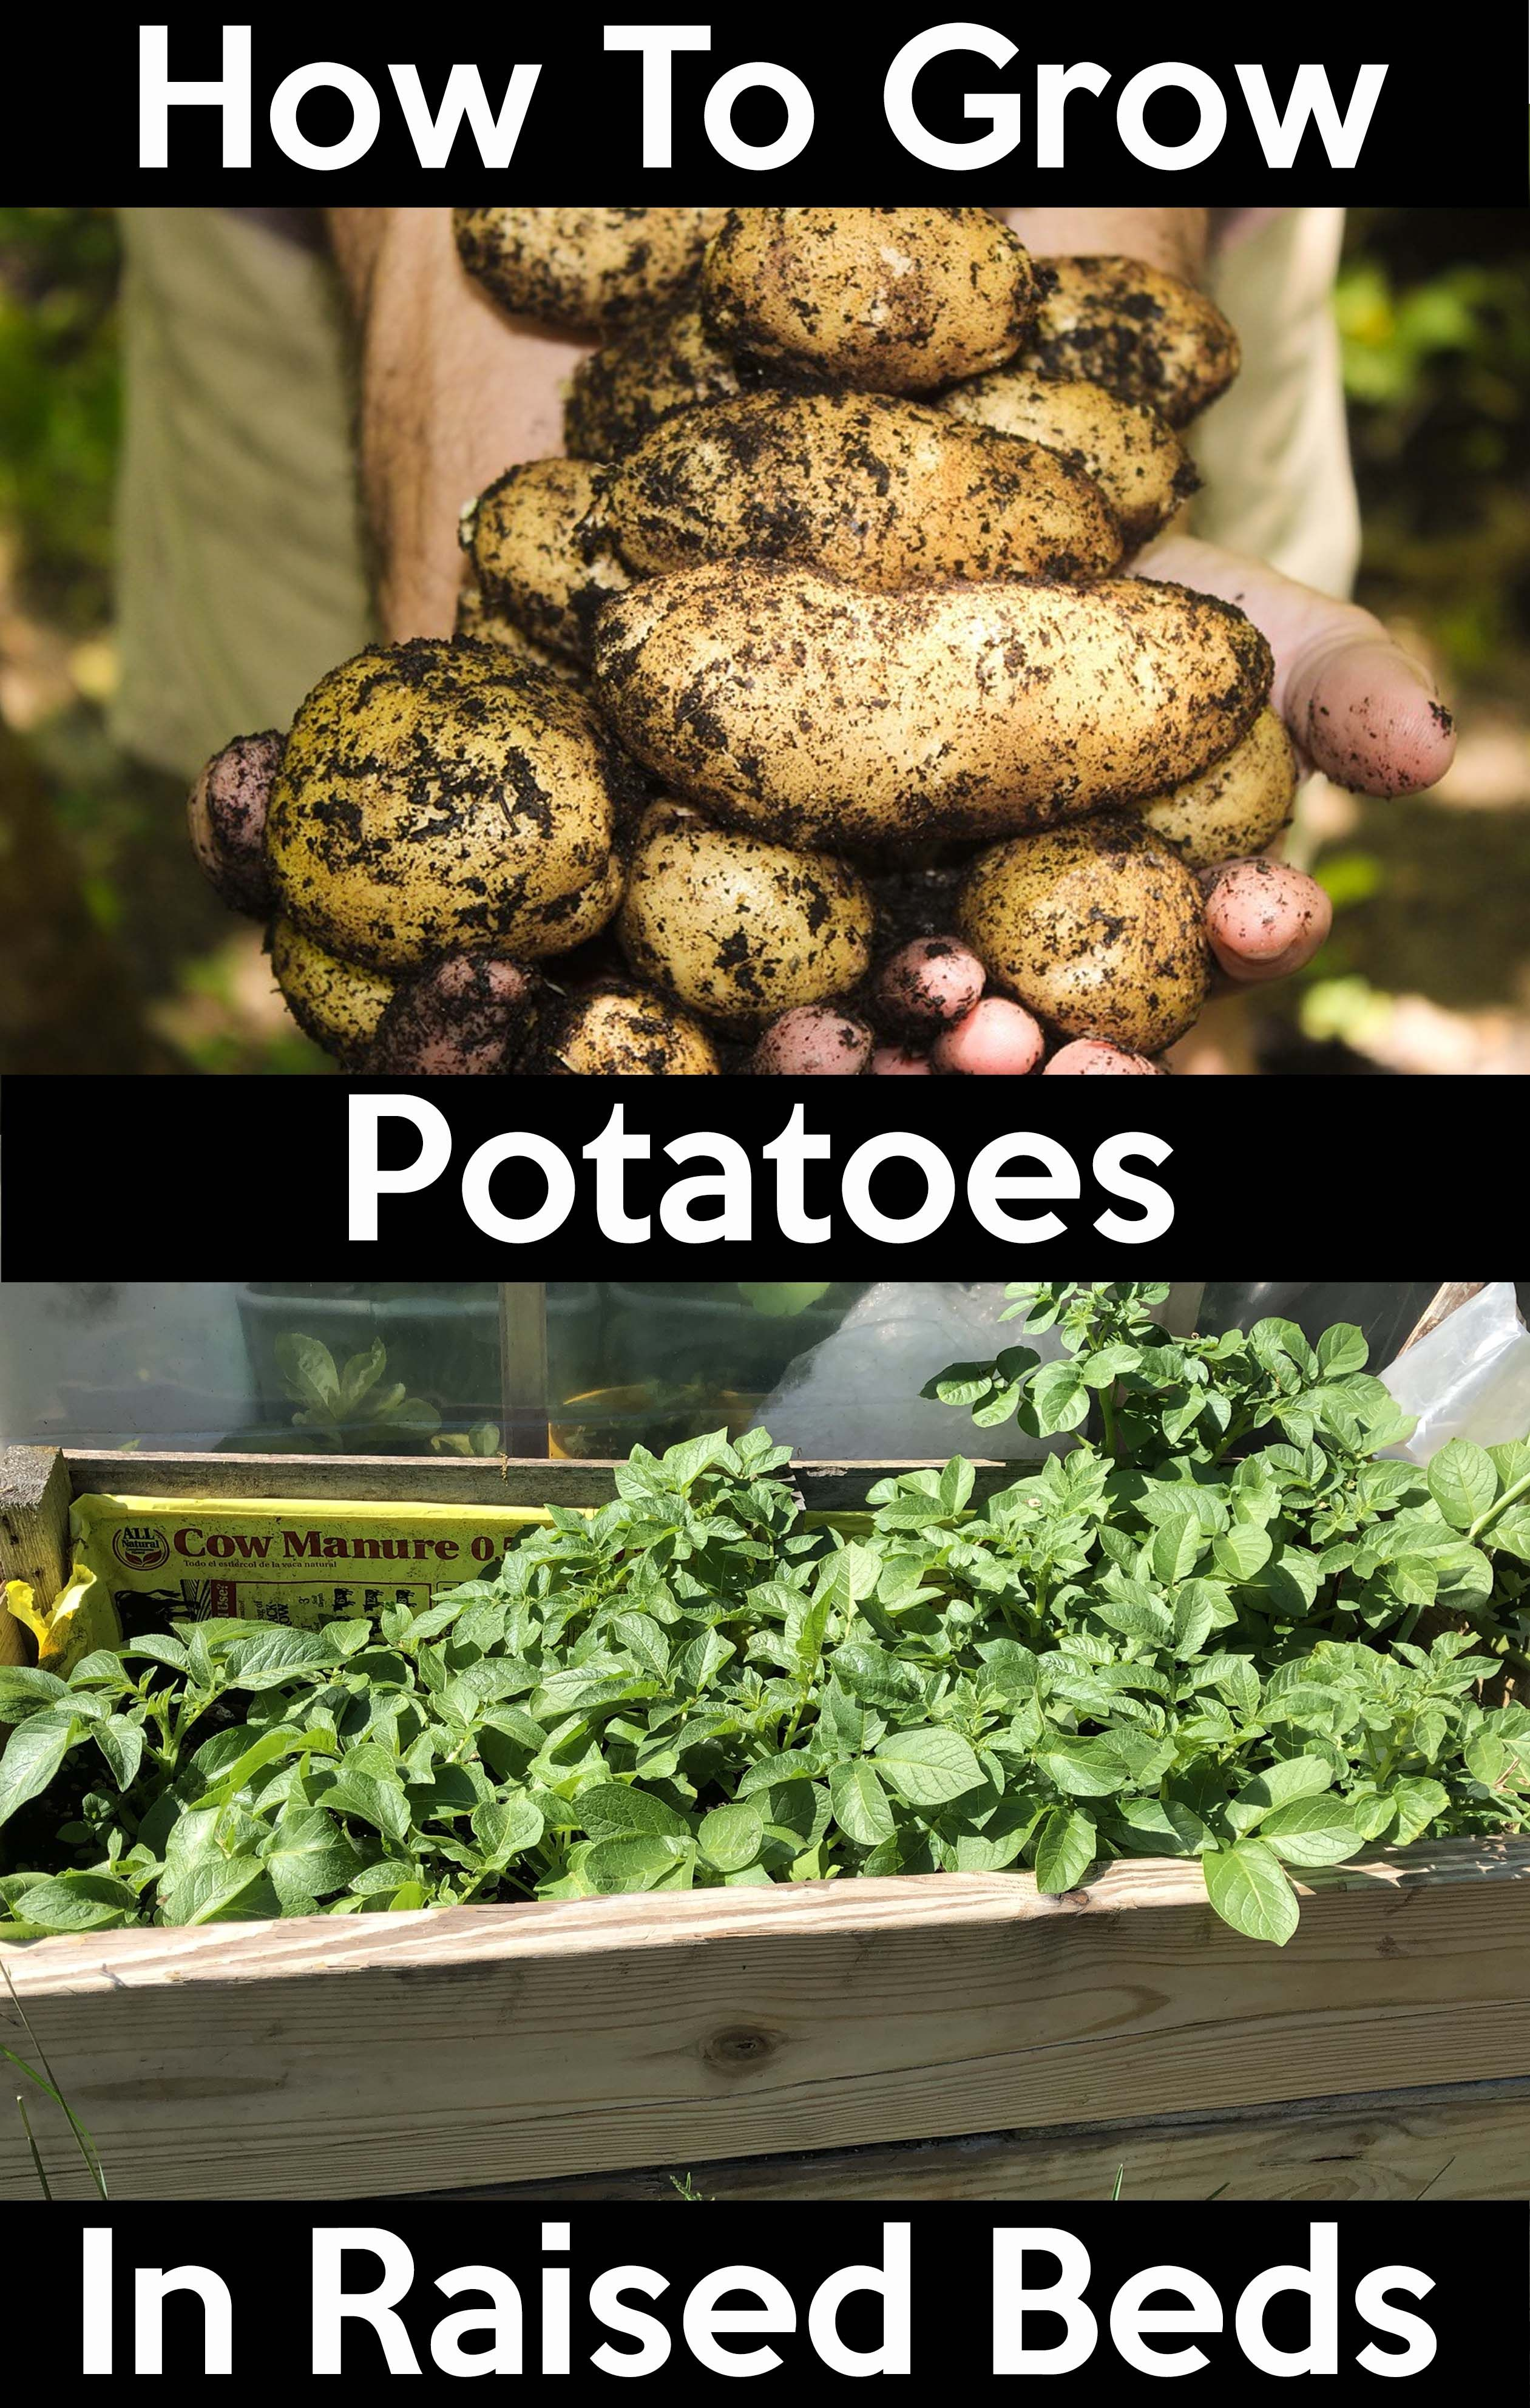 How To Grow Potatoes How To Grow Potatoes Easy Step By Step Guide